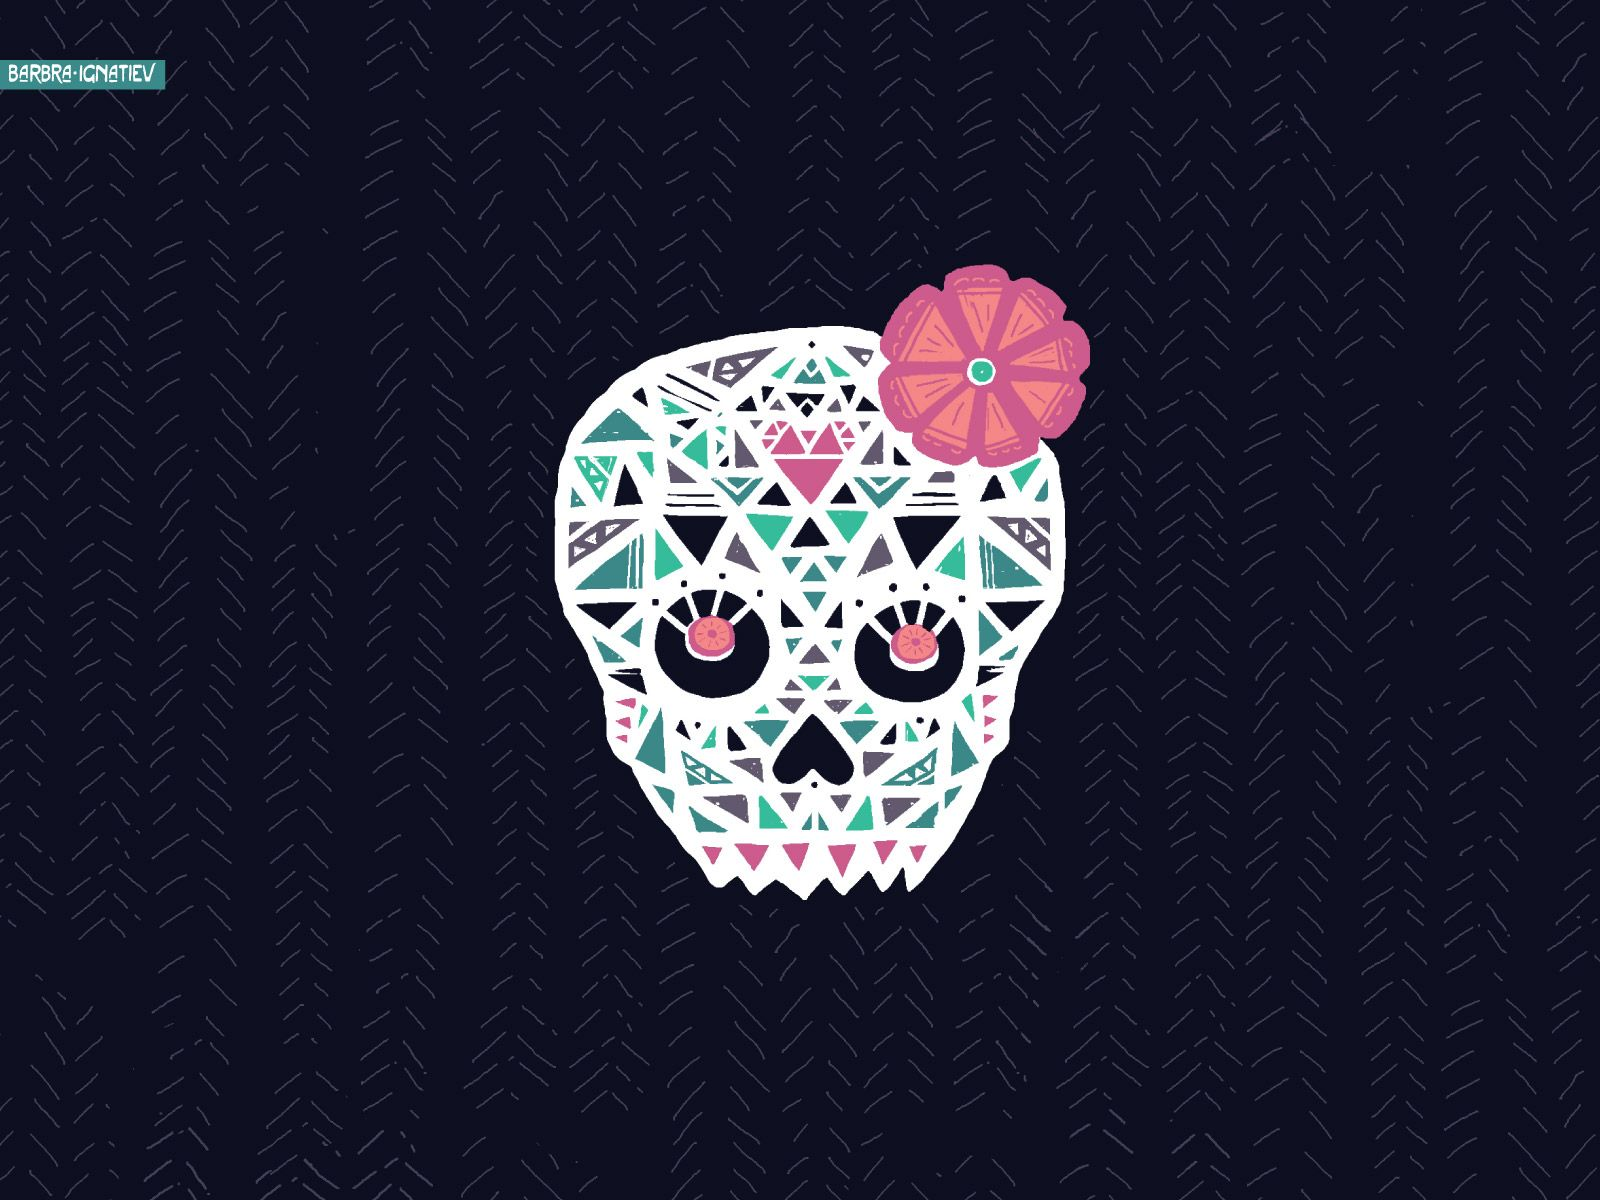 Iphone wallpaper tumblr skull - Pink Sugar Skull Wallpaper Mbulaho Tumblr Iphone Wallpaper